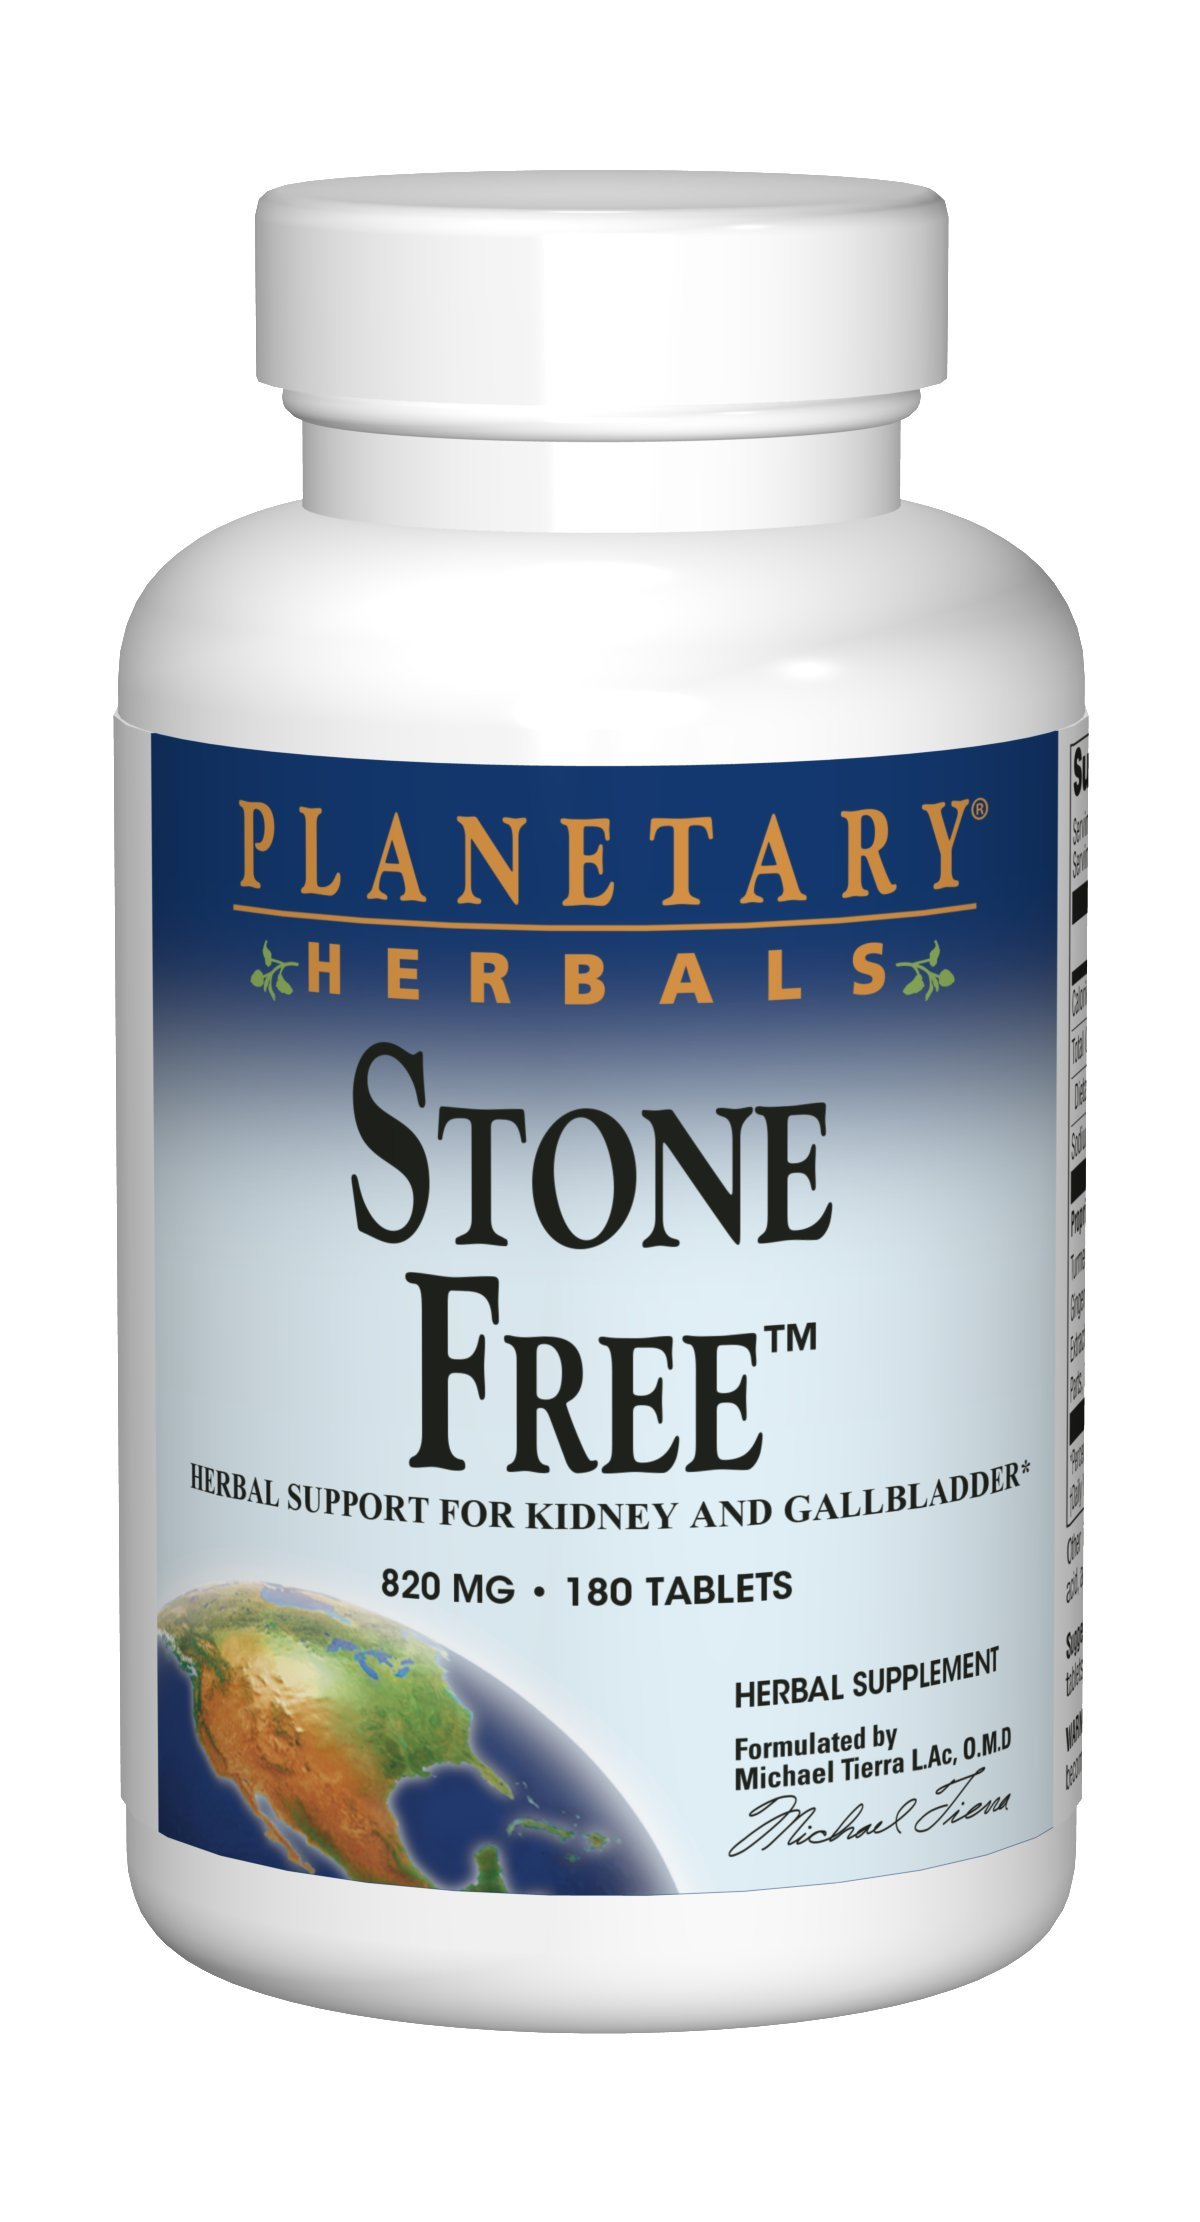 Planetary Herbals Stone Free 820mg, Herbal Support for Kidney and Gallbladder, 180 tablets